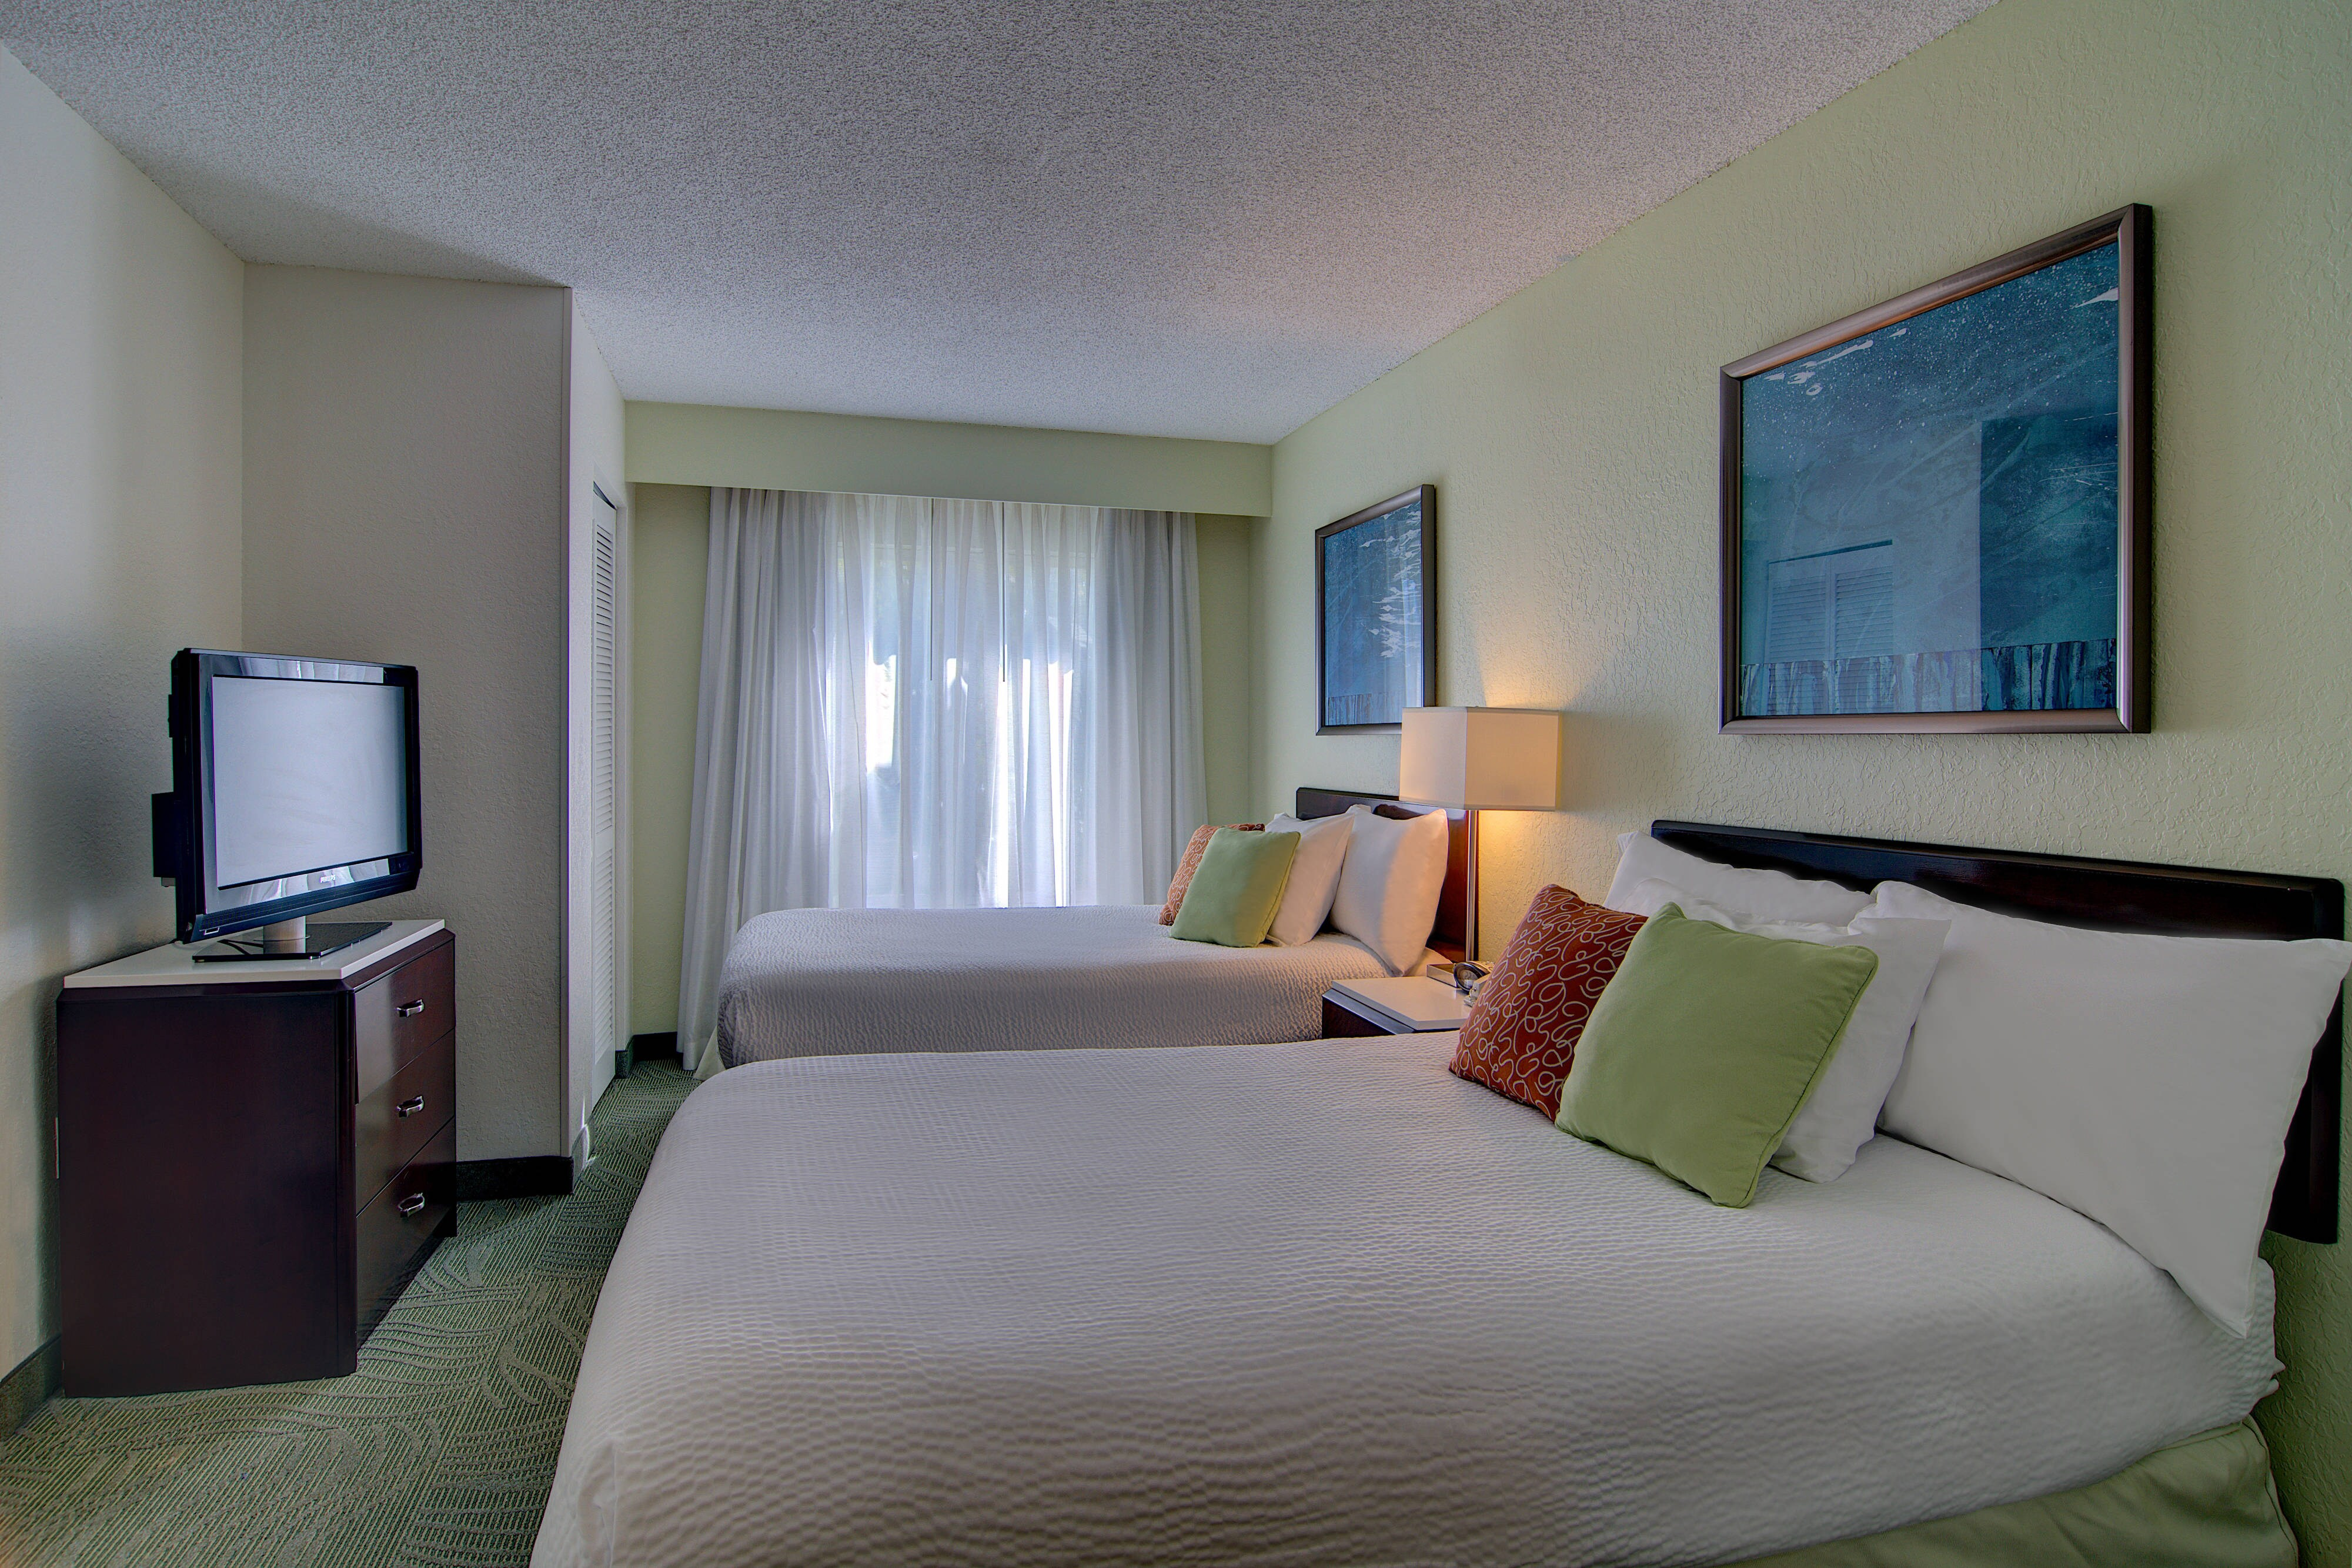 SpringHill Suites Two Double Bed Suite